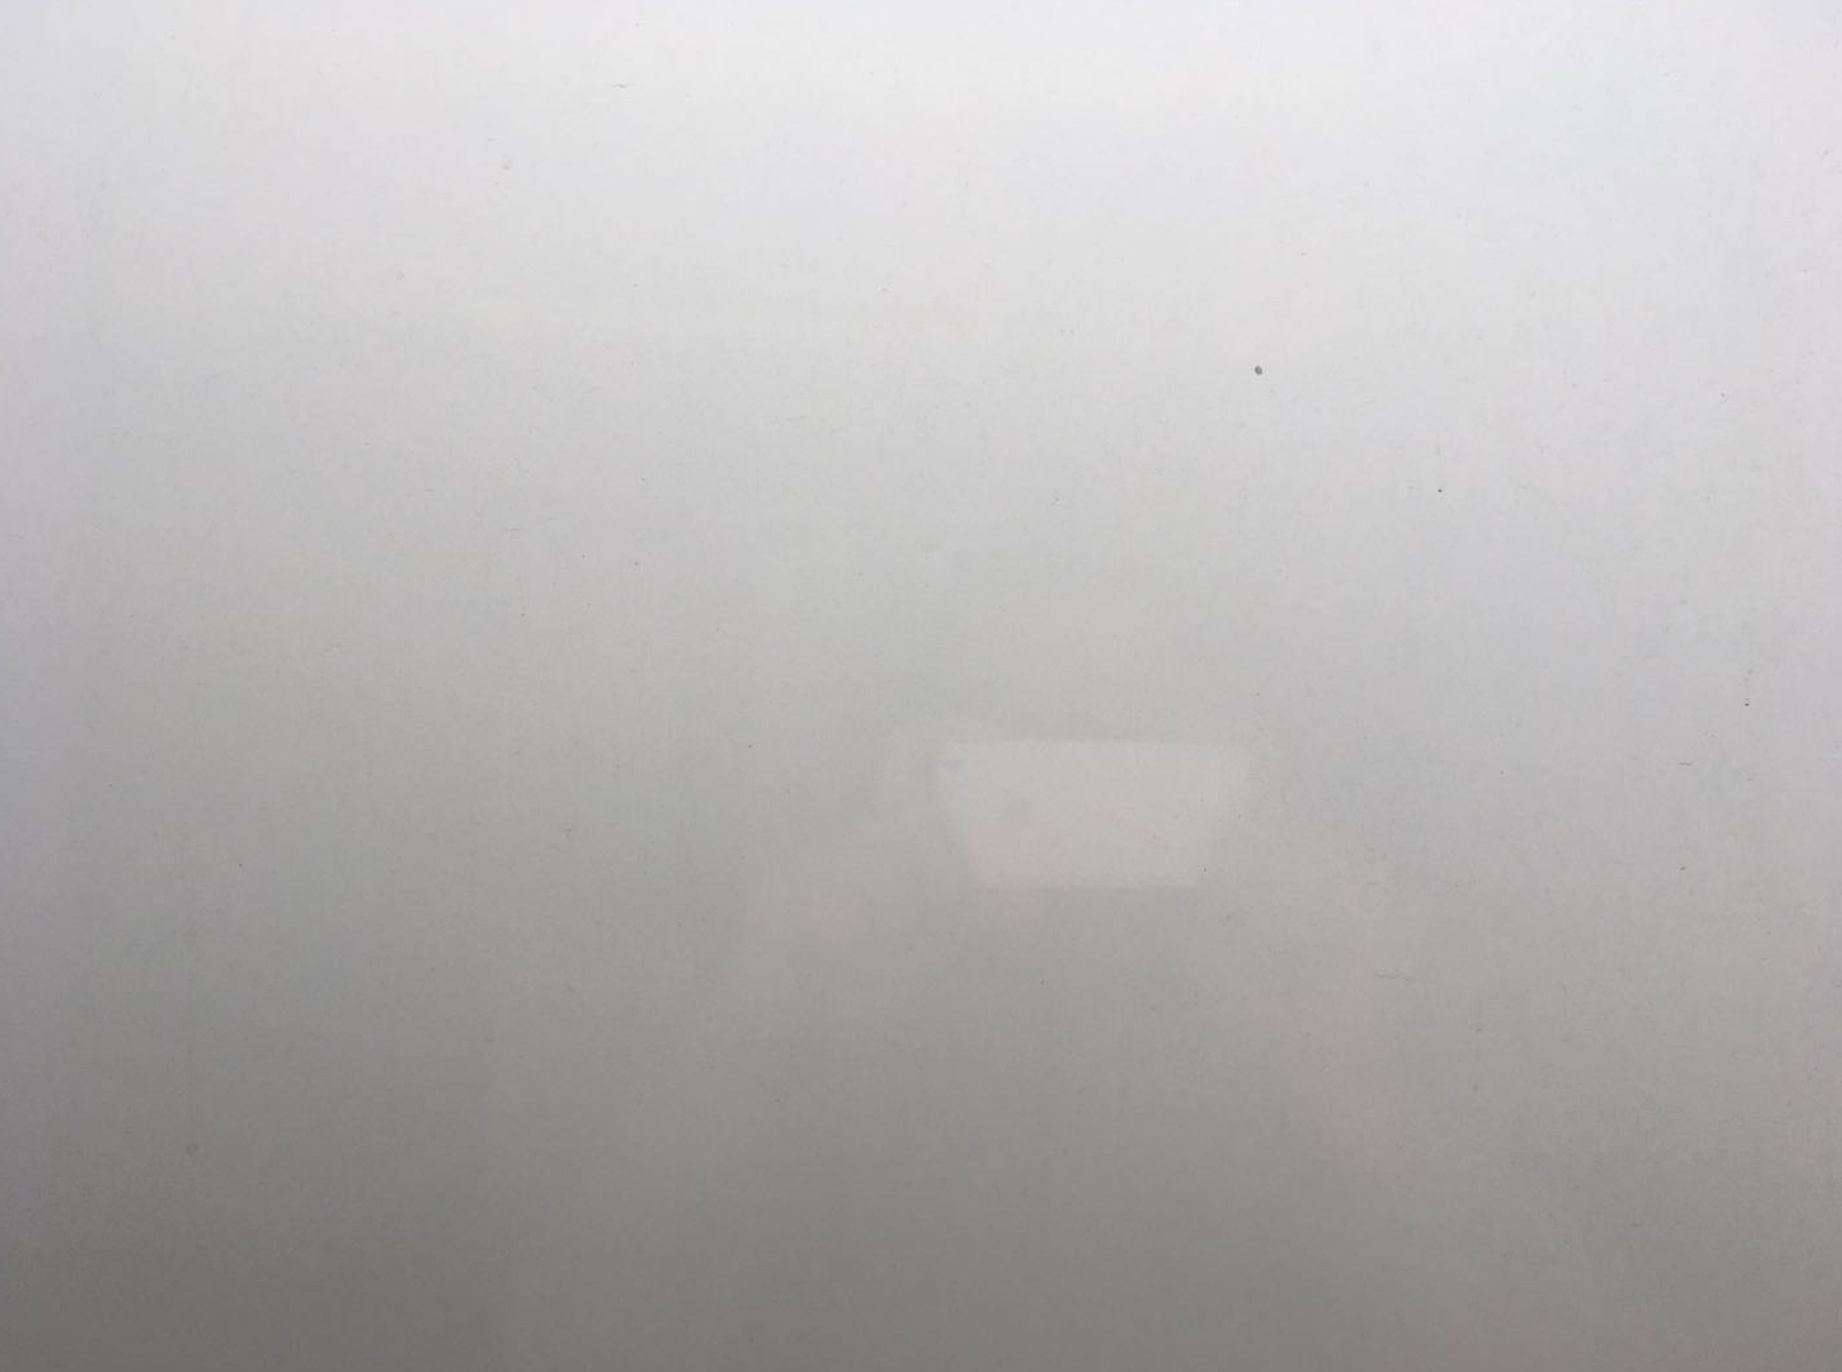 The city of Fog